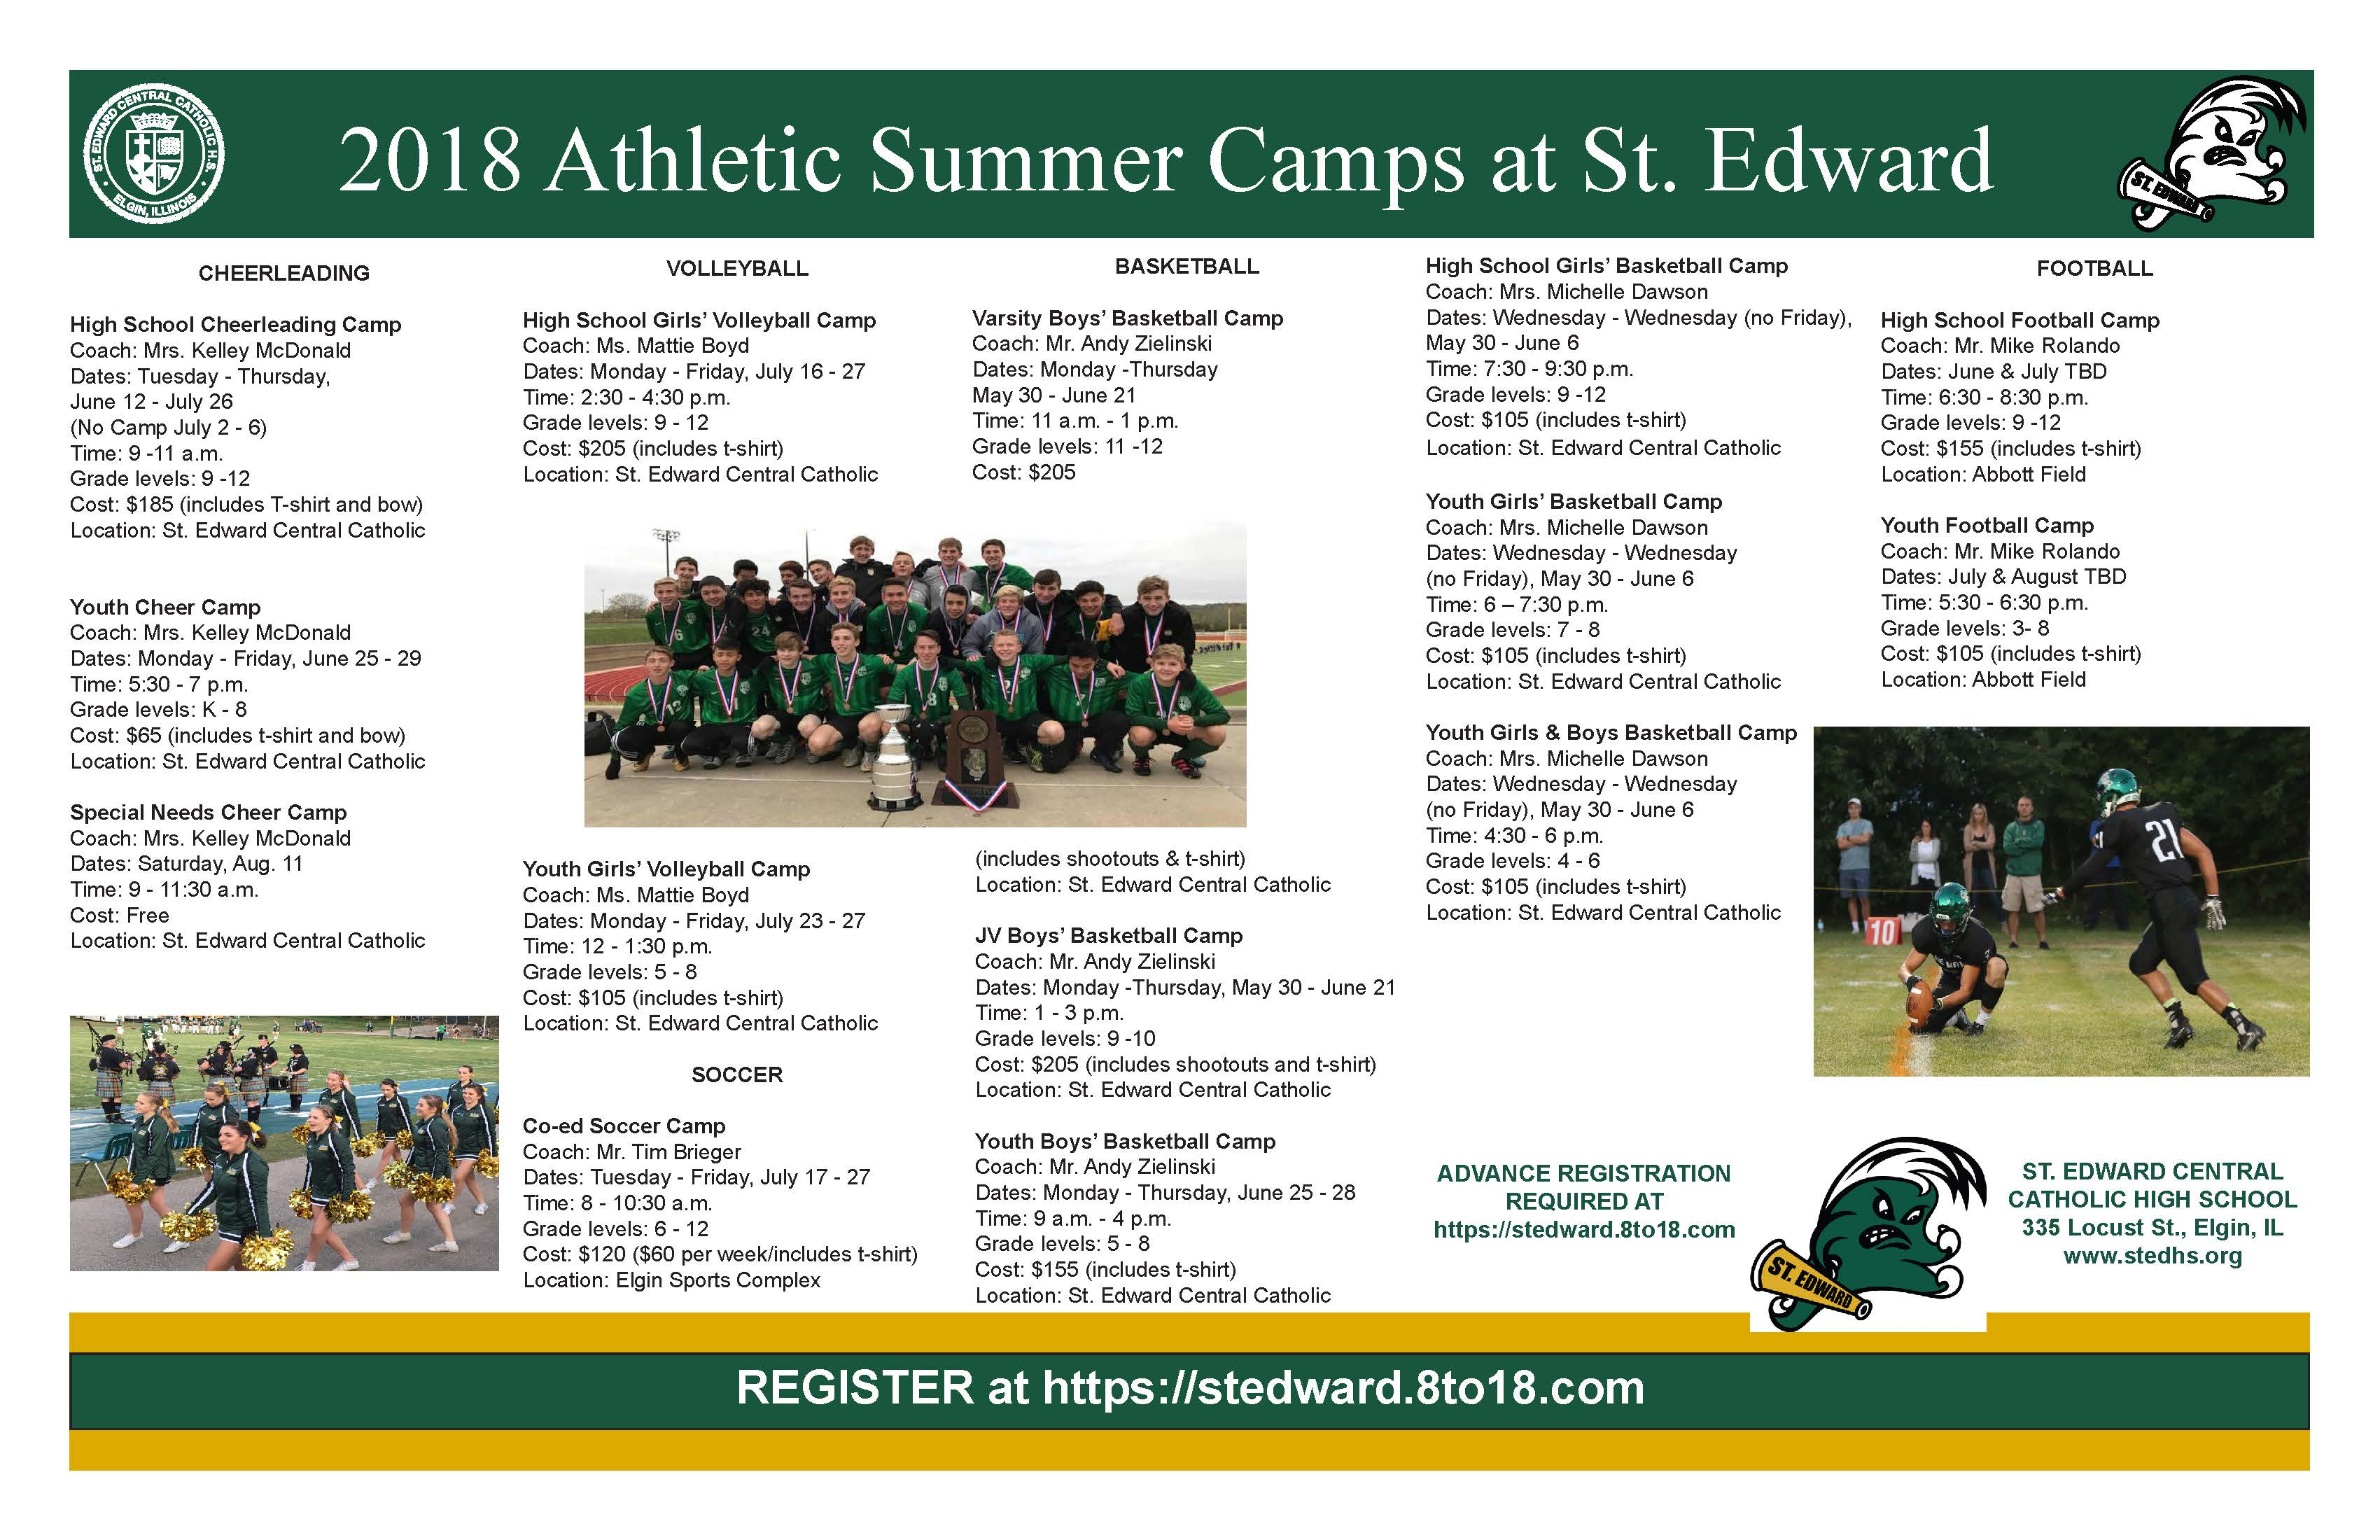 https://stedhs.org/wp-content/uploads/2018/05/Summer-Camp-Poster-11-by-17-v-5-29-18.pdf